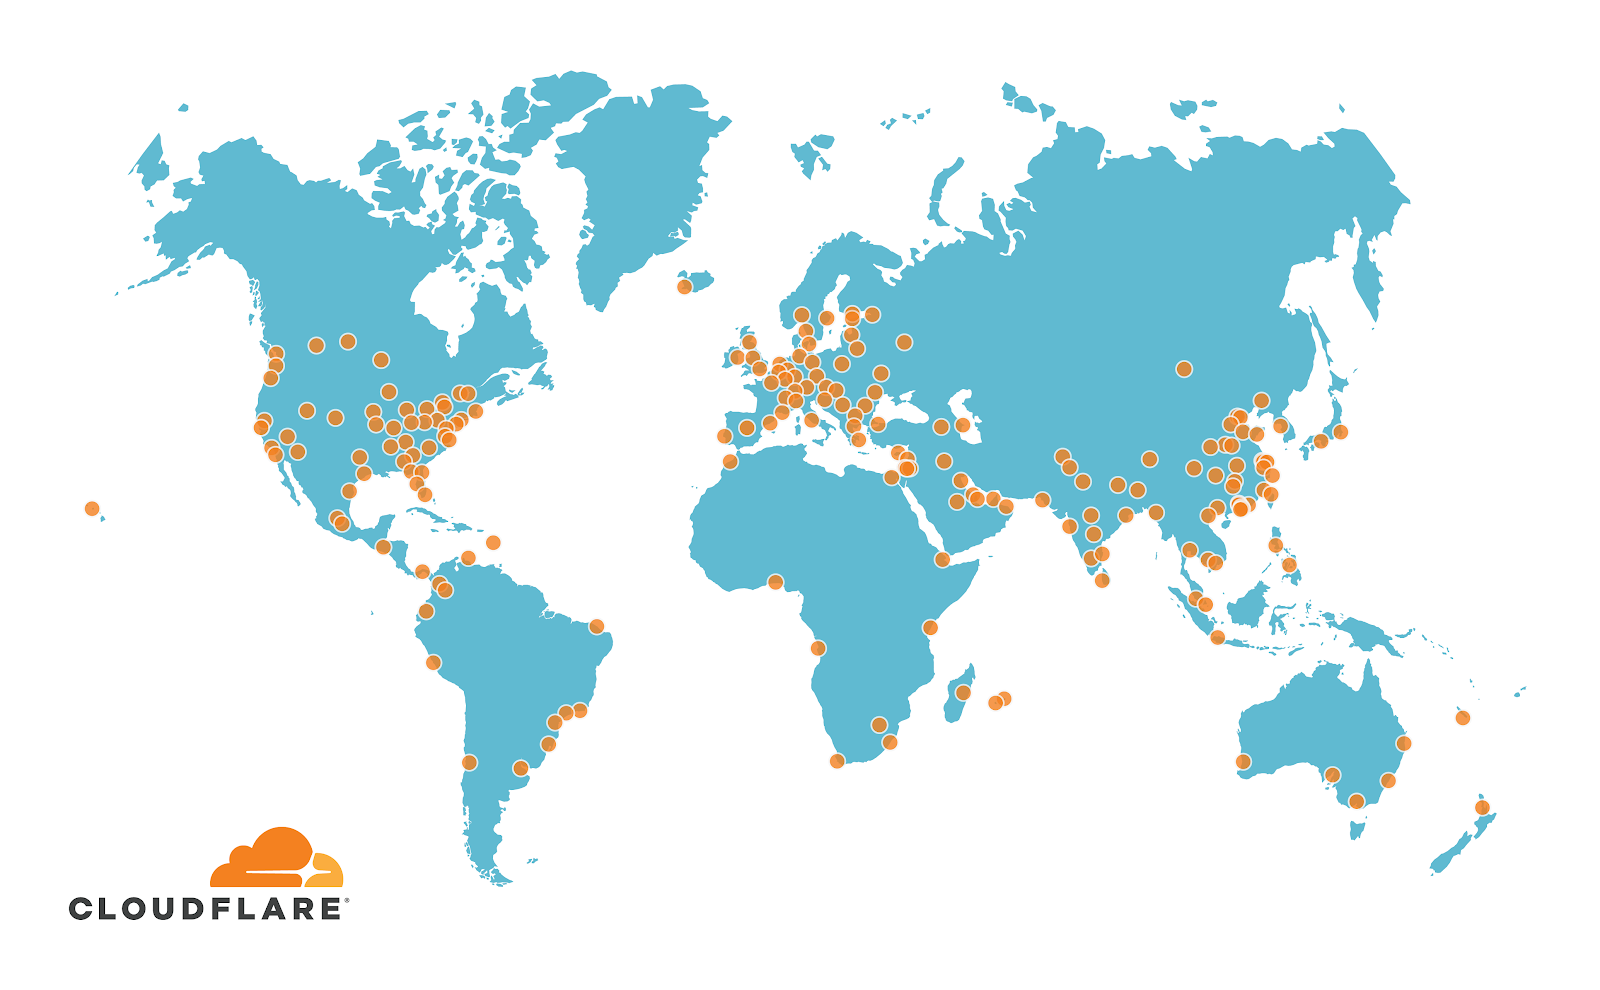 Cloudflare Expanded to 200 Cities in 2019